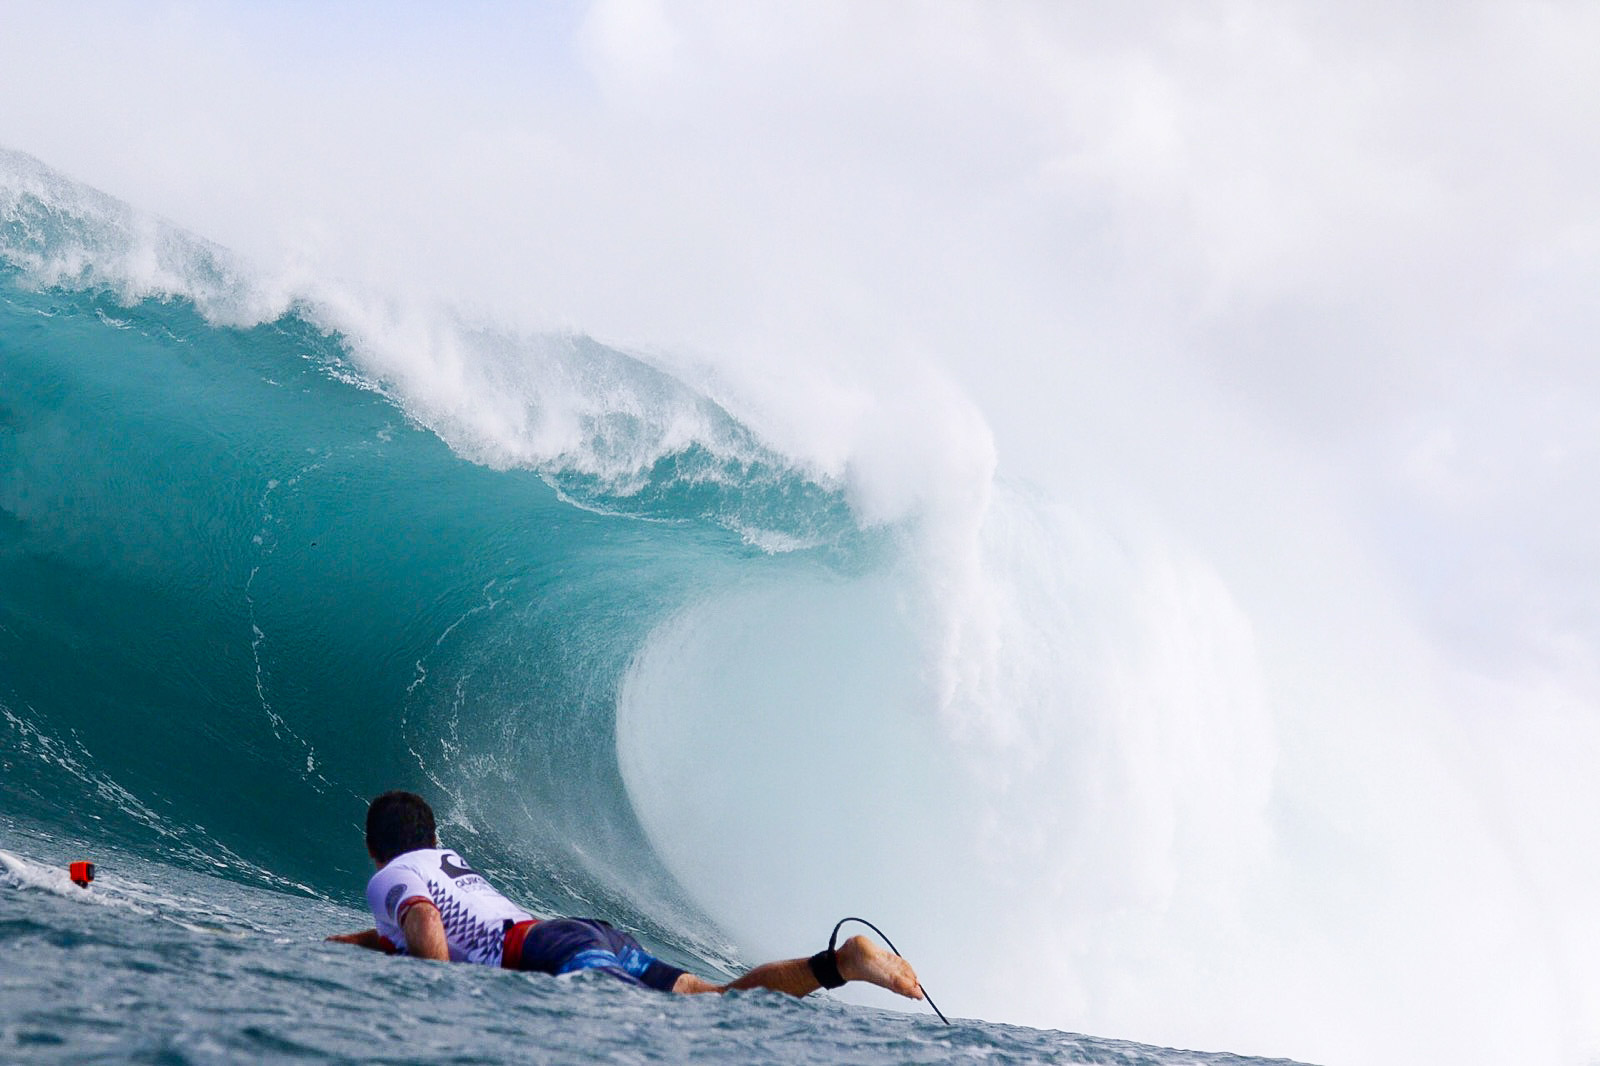 ed22c5056e The Quiksilver In Memory of Eddie Aikau is the original one-day